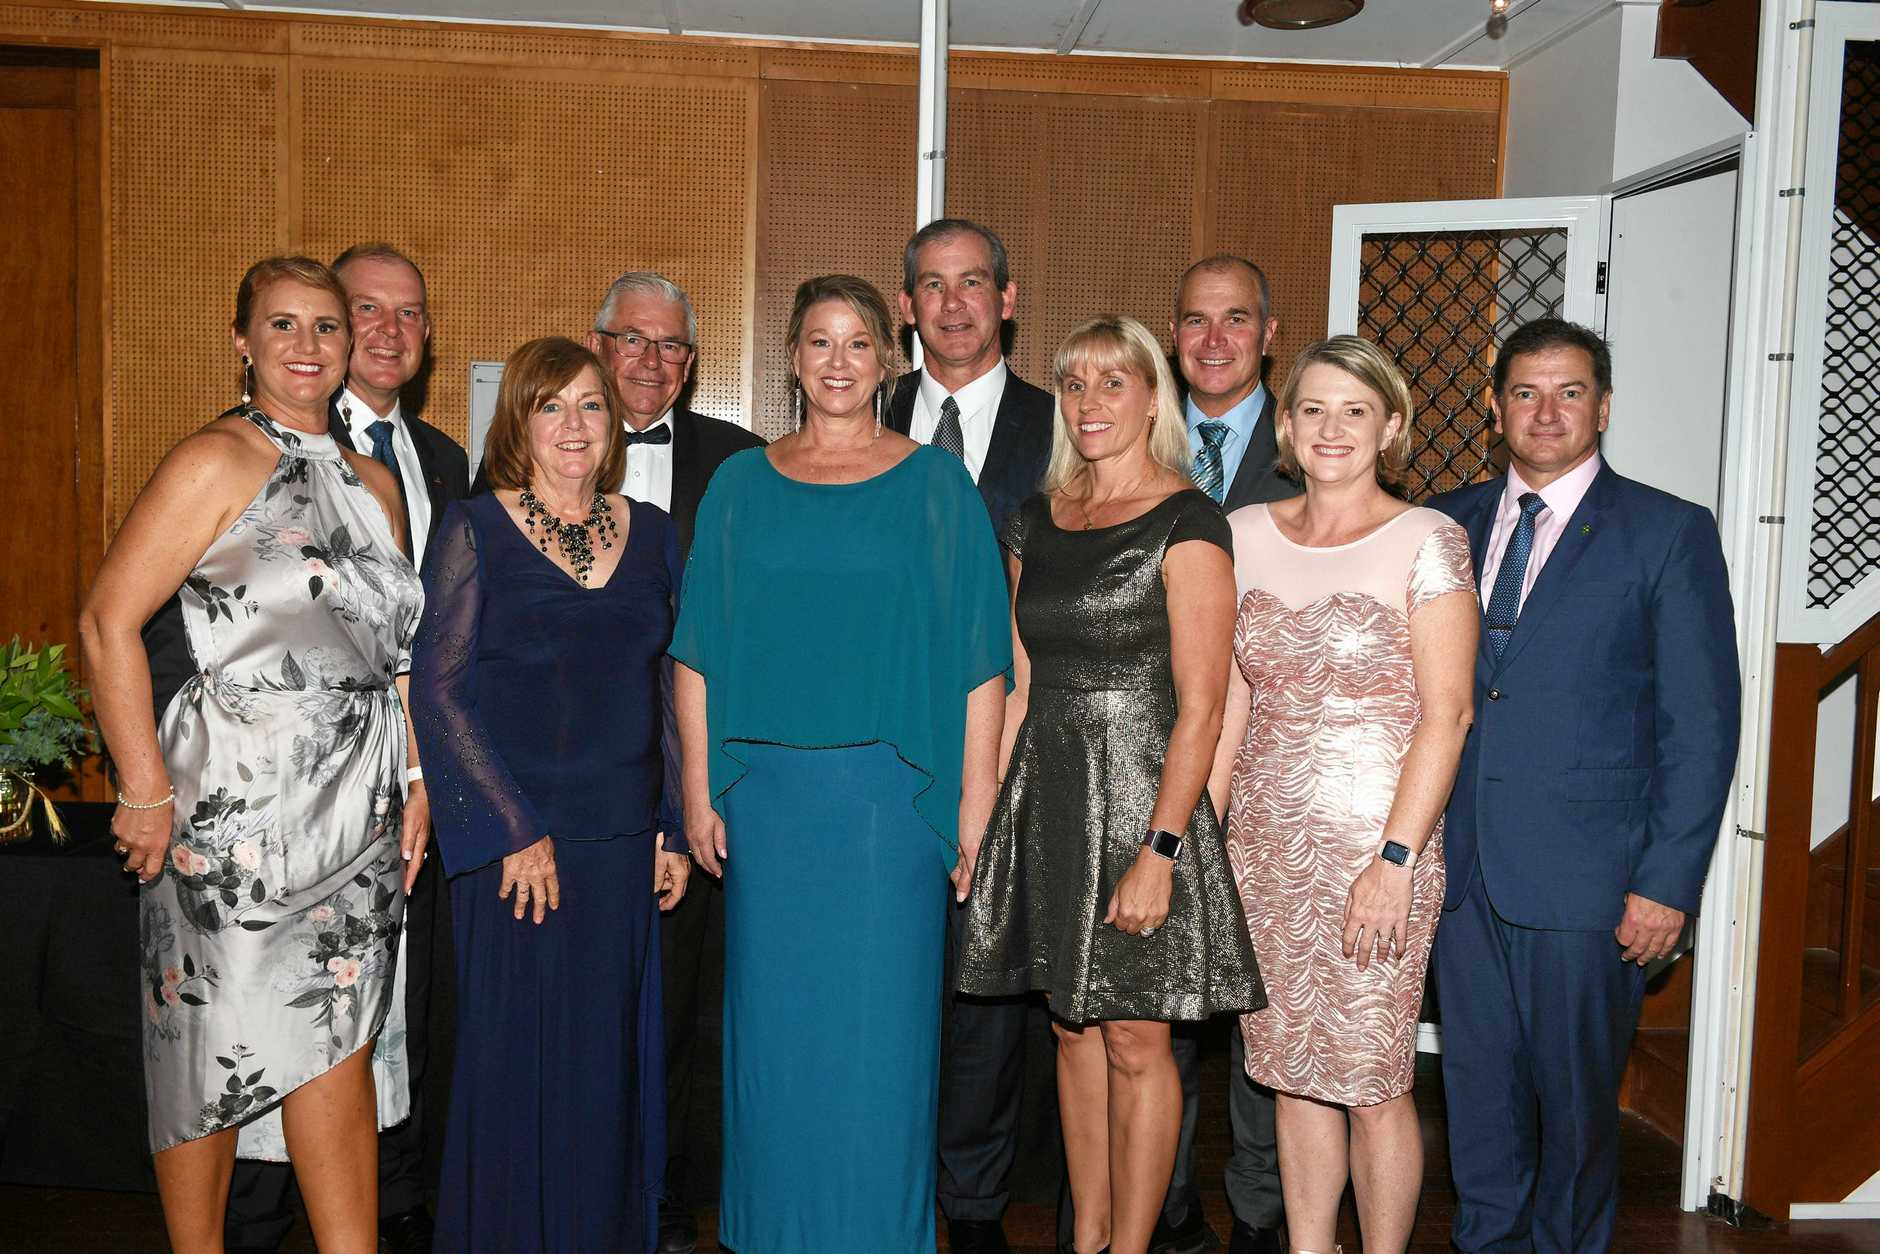 Gympie Show Ball - Tony and Michelle Perrett, Graham and Margret Engeman, Sue and Mick Curren, Correne and Bob Leitch, Sharon and Llew OBrien